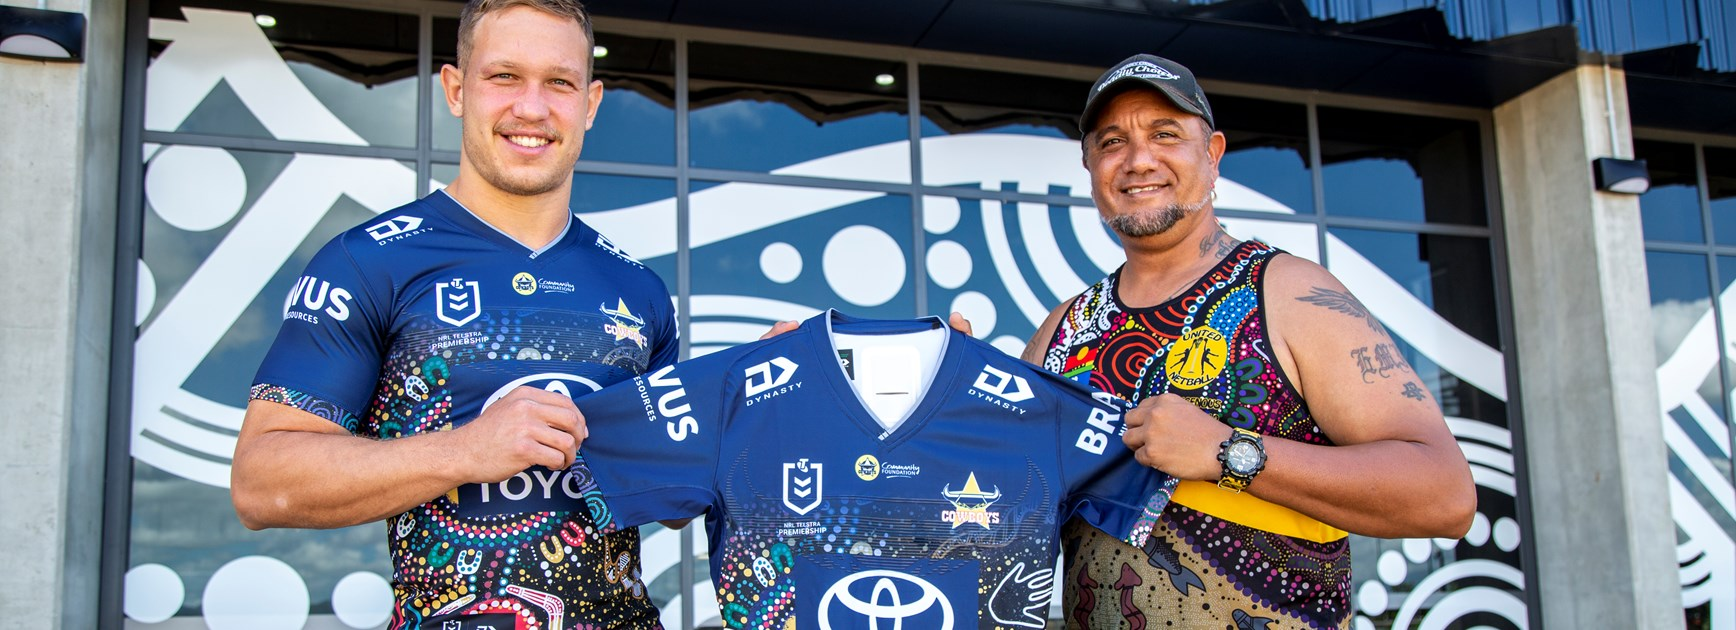 Indigenous jersey design promoting unity